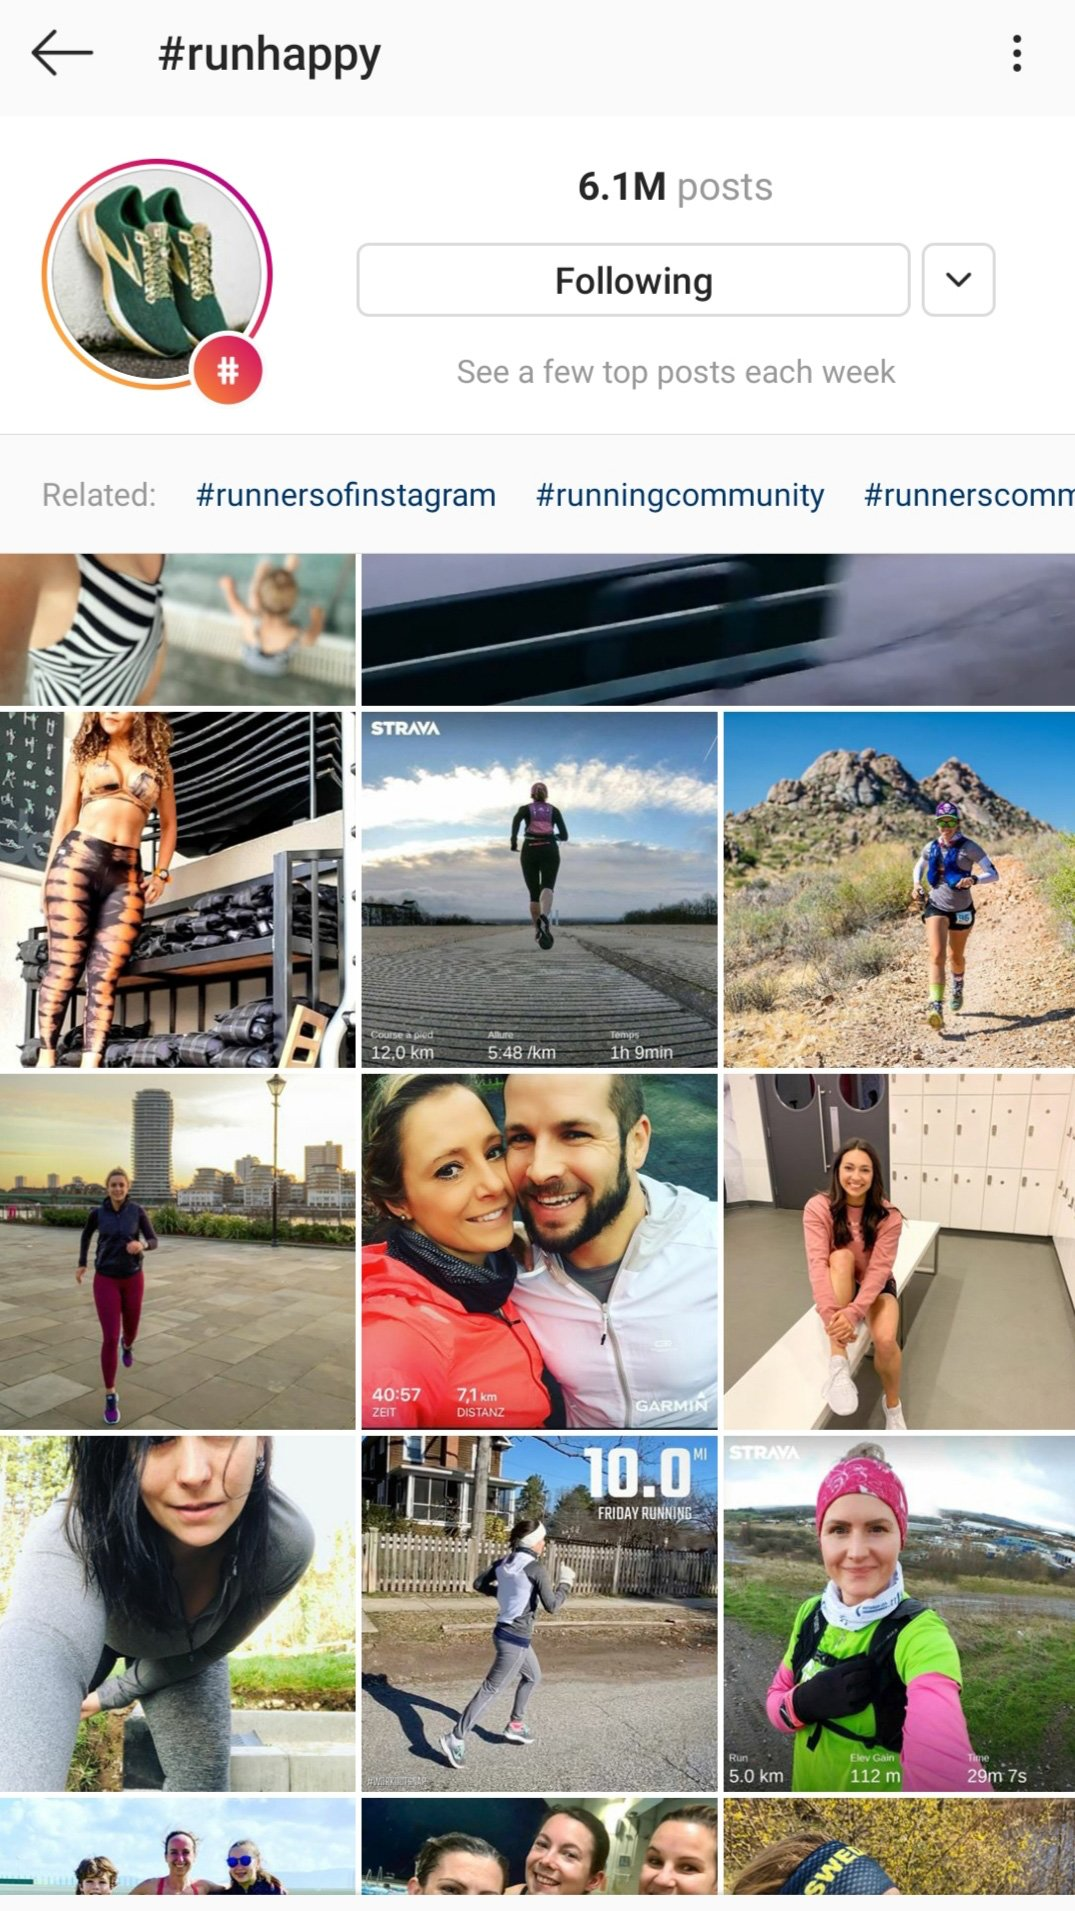 Evergreen hashtags - RunHappy - Instagram